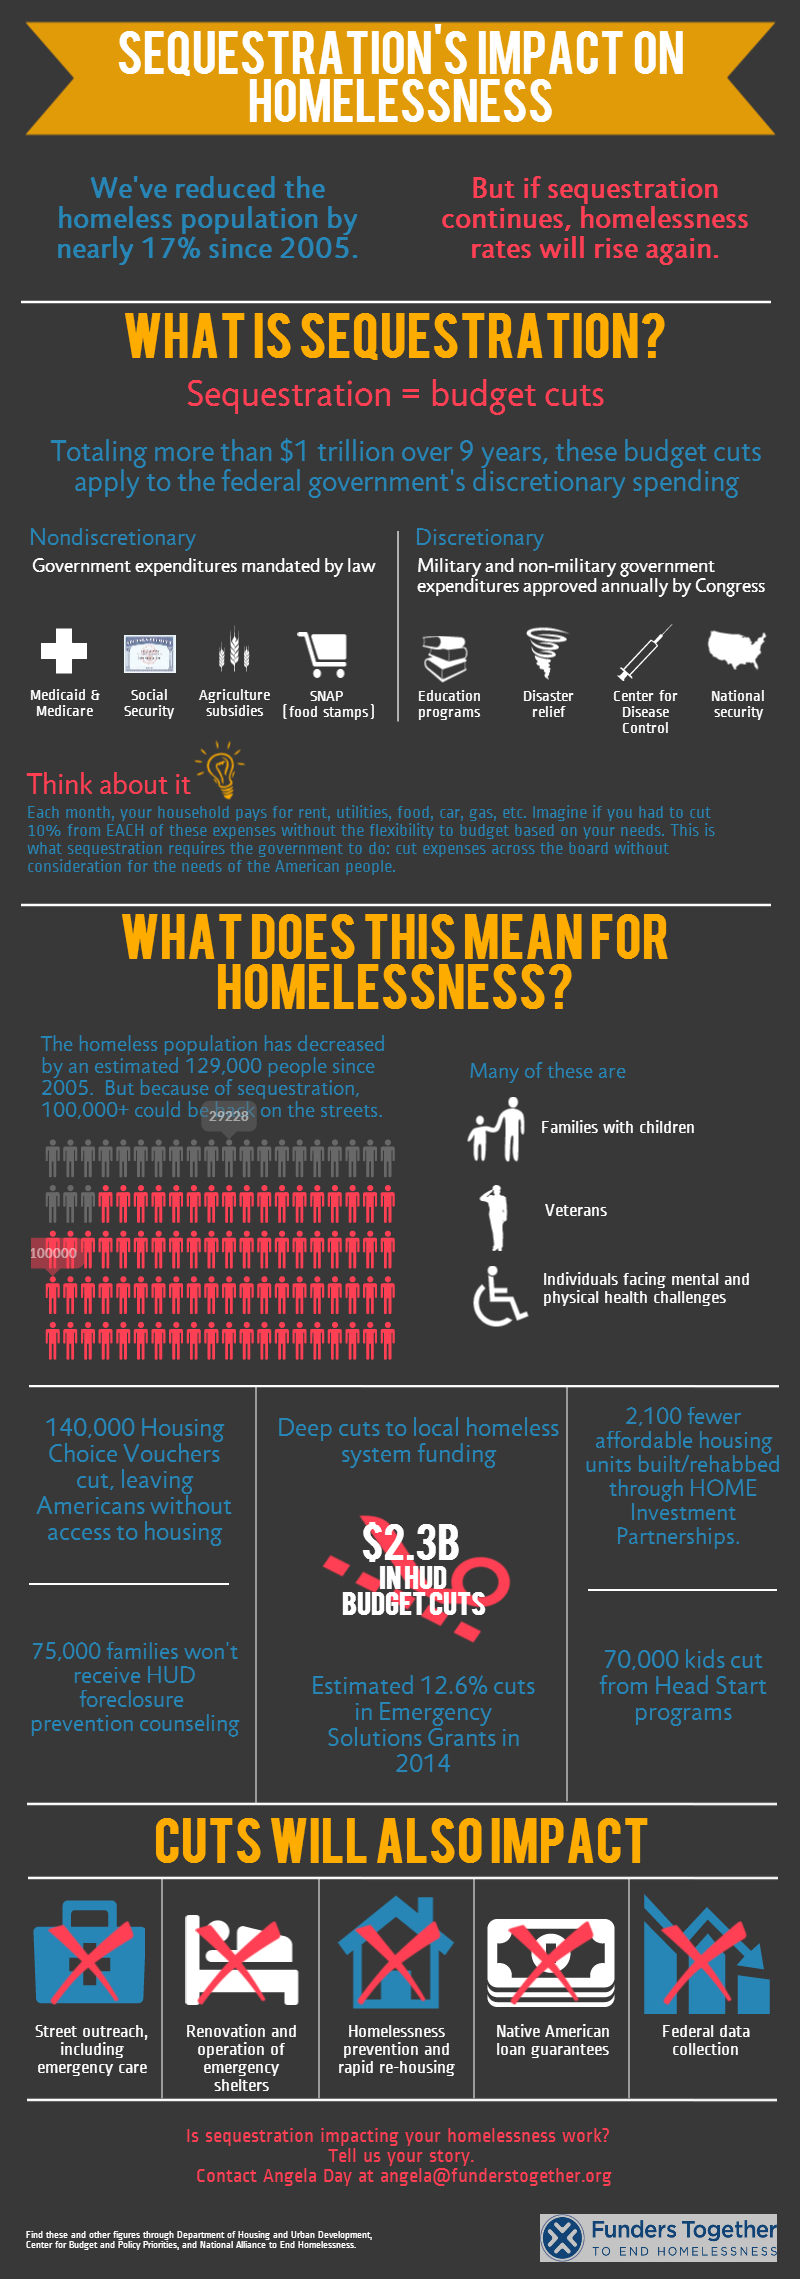 Sequestration's impact on homelessness History never